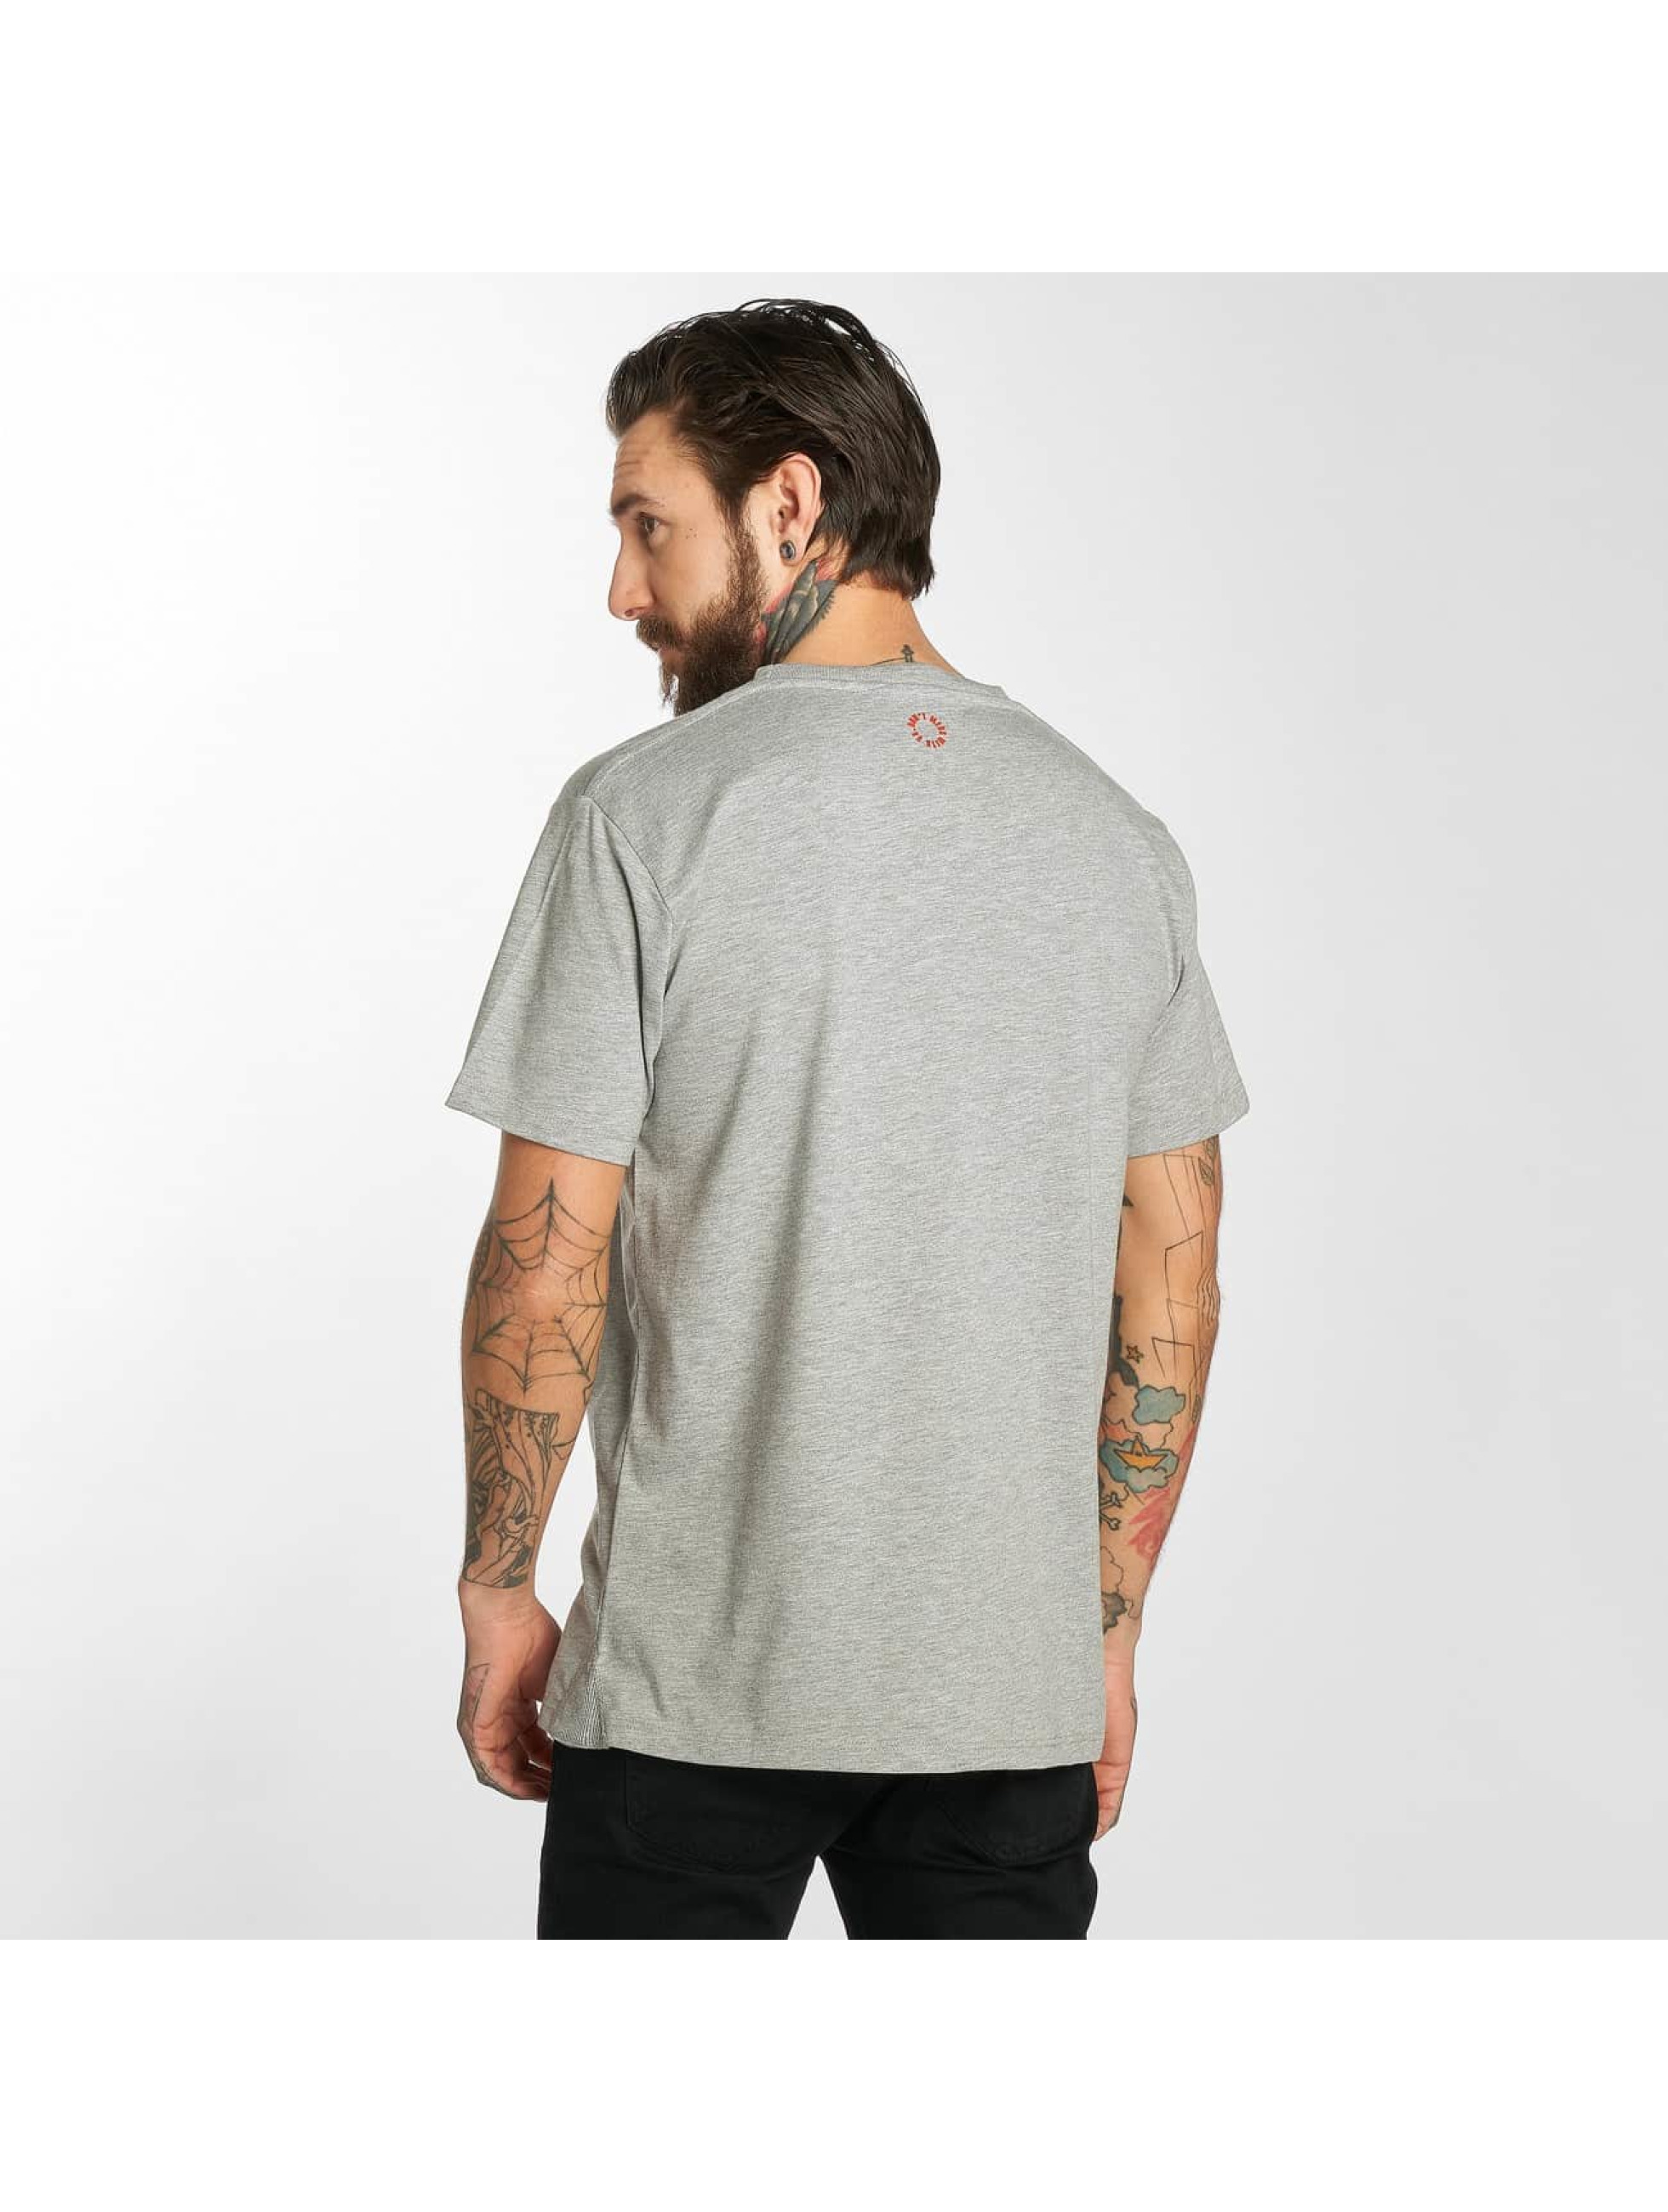 UNFAIR ATHLETICS T-Shirt Classic grey